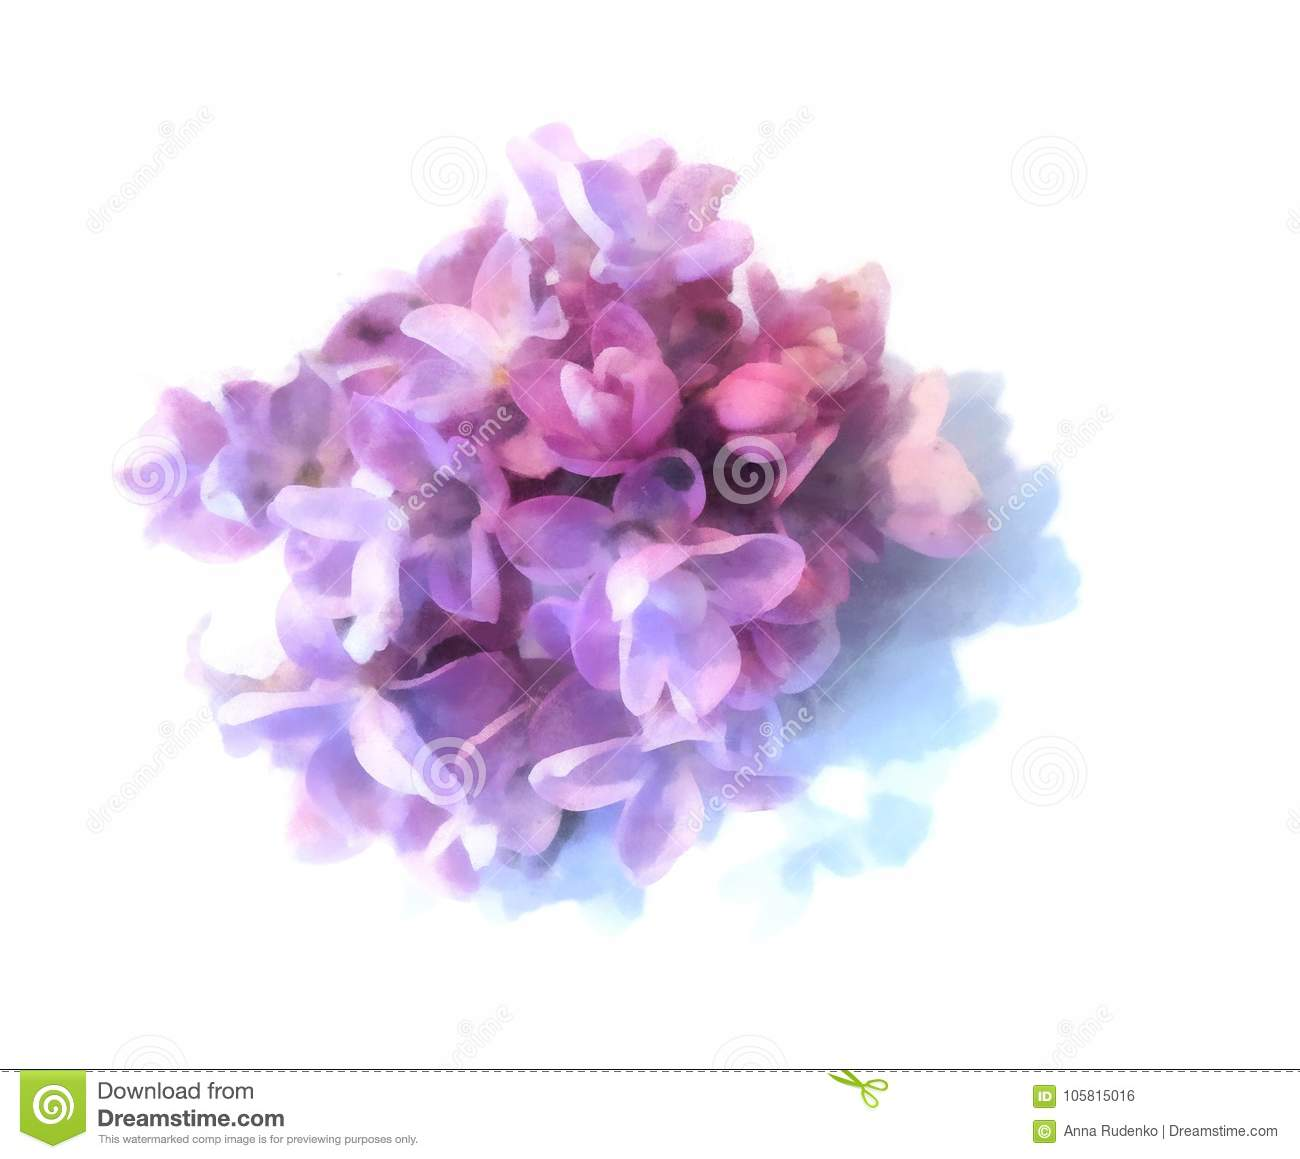 Blue Lilac Oil Draw Perspective Paint Fresh Delicate Flowers An Stock Illustration Illustration Of Green Freesias 105815016